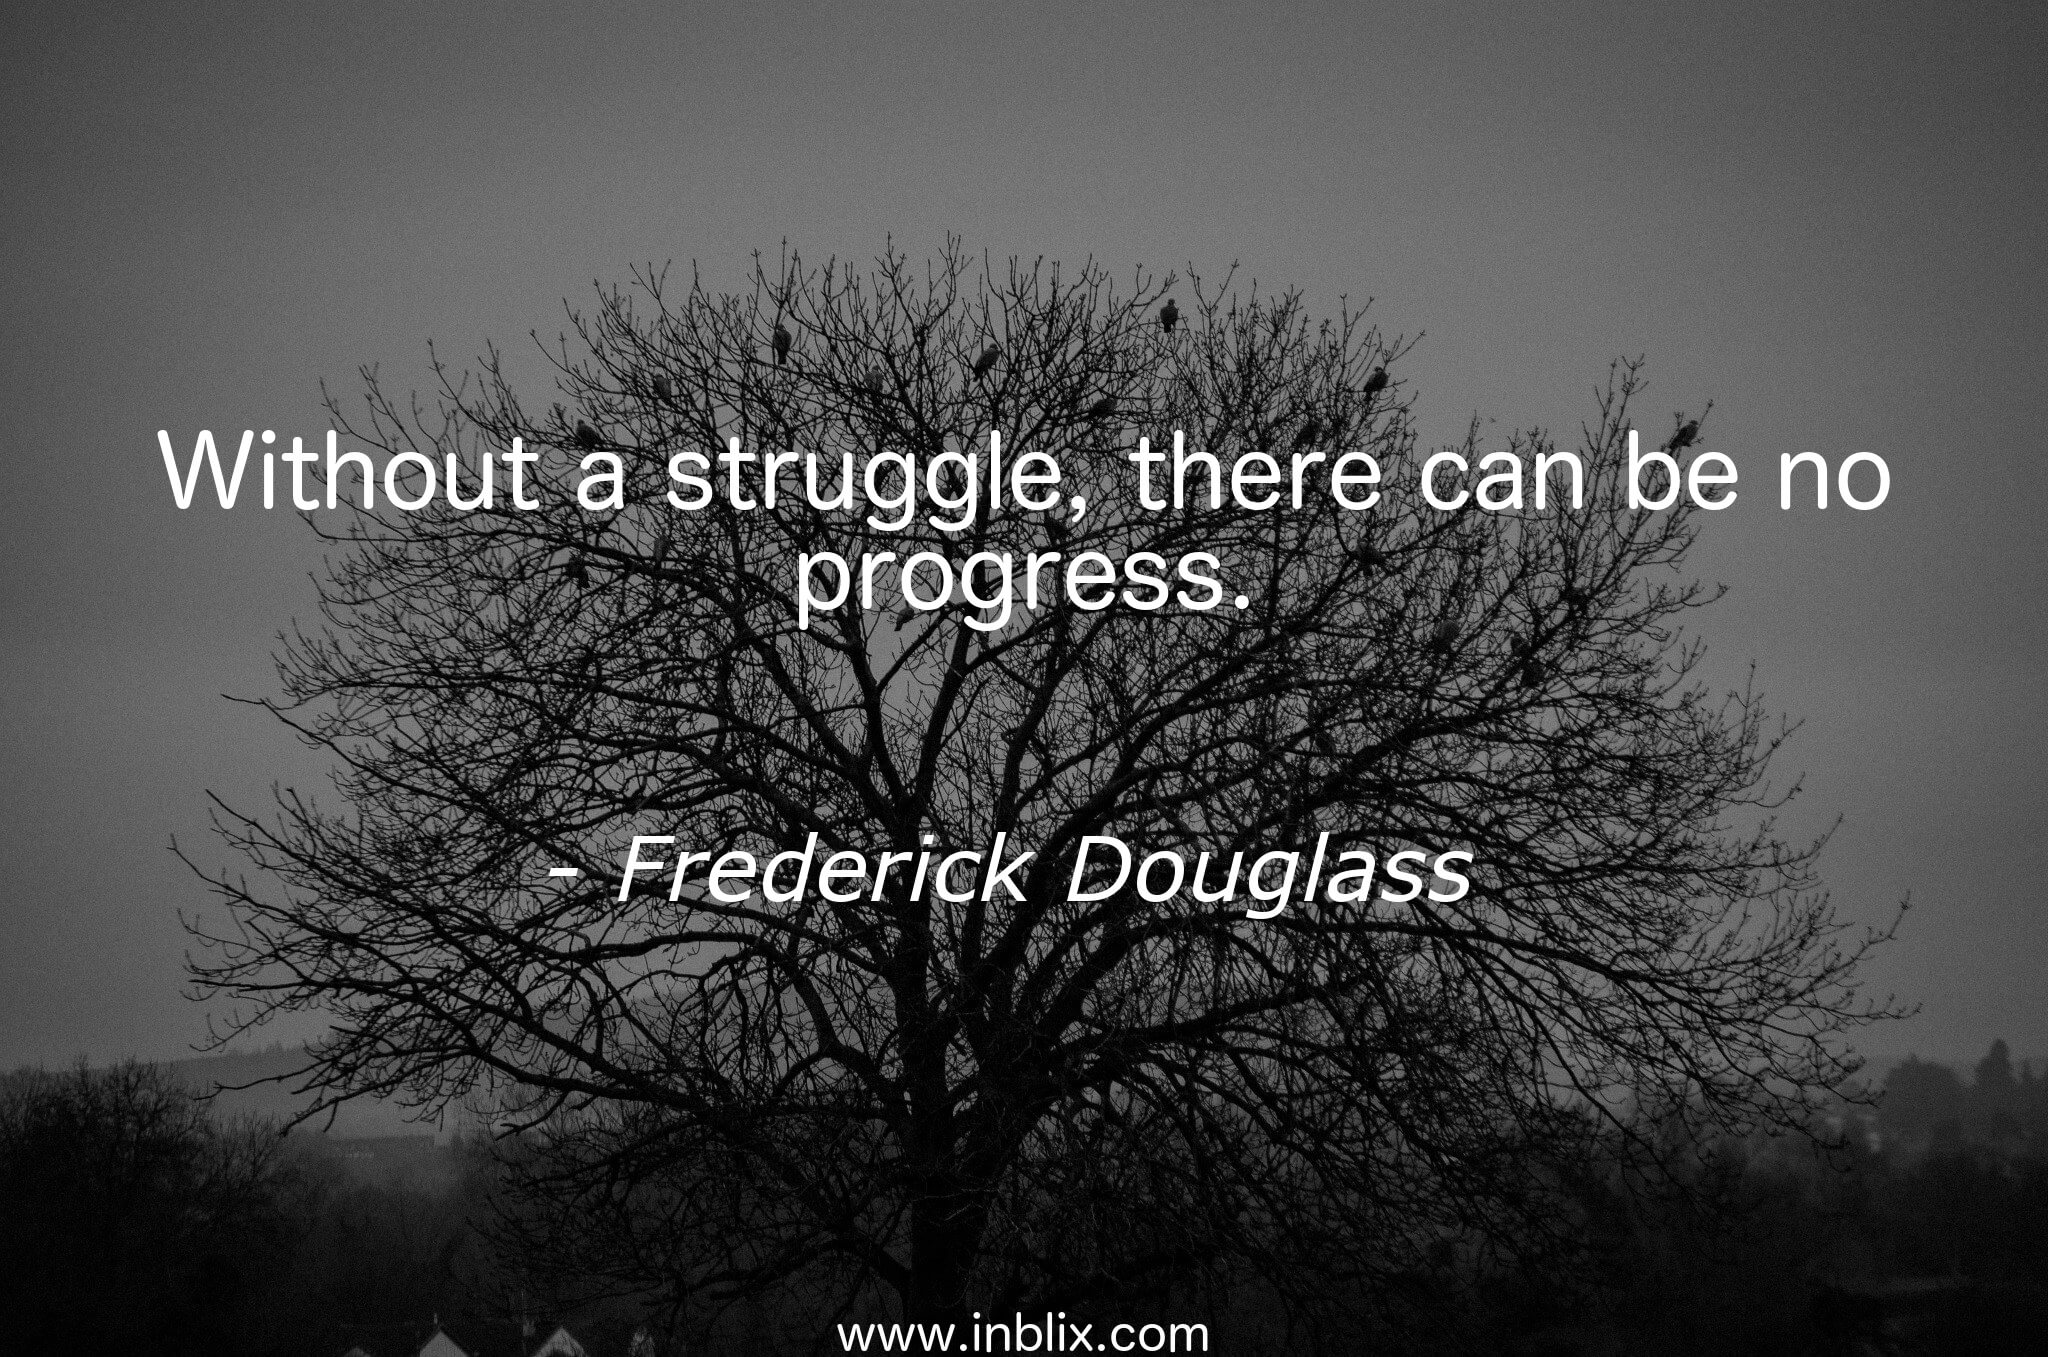 Without a struggle, there can be no progress.